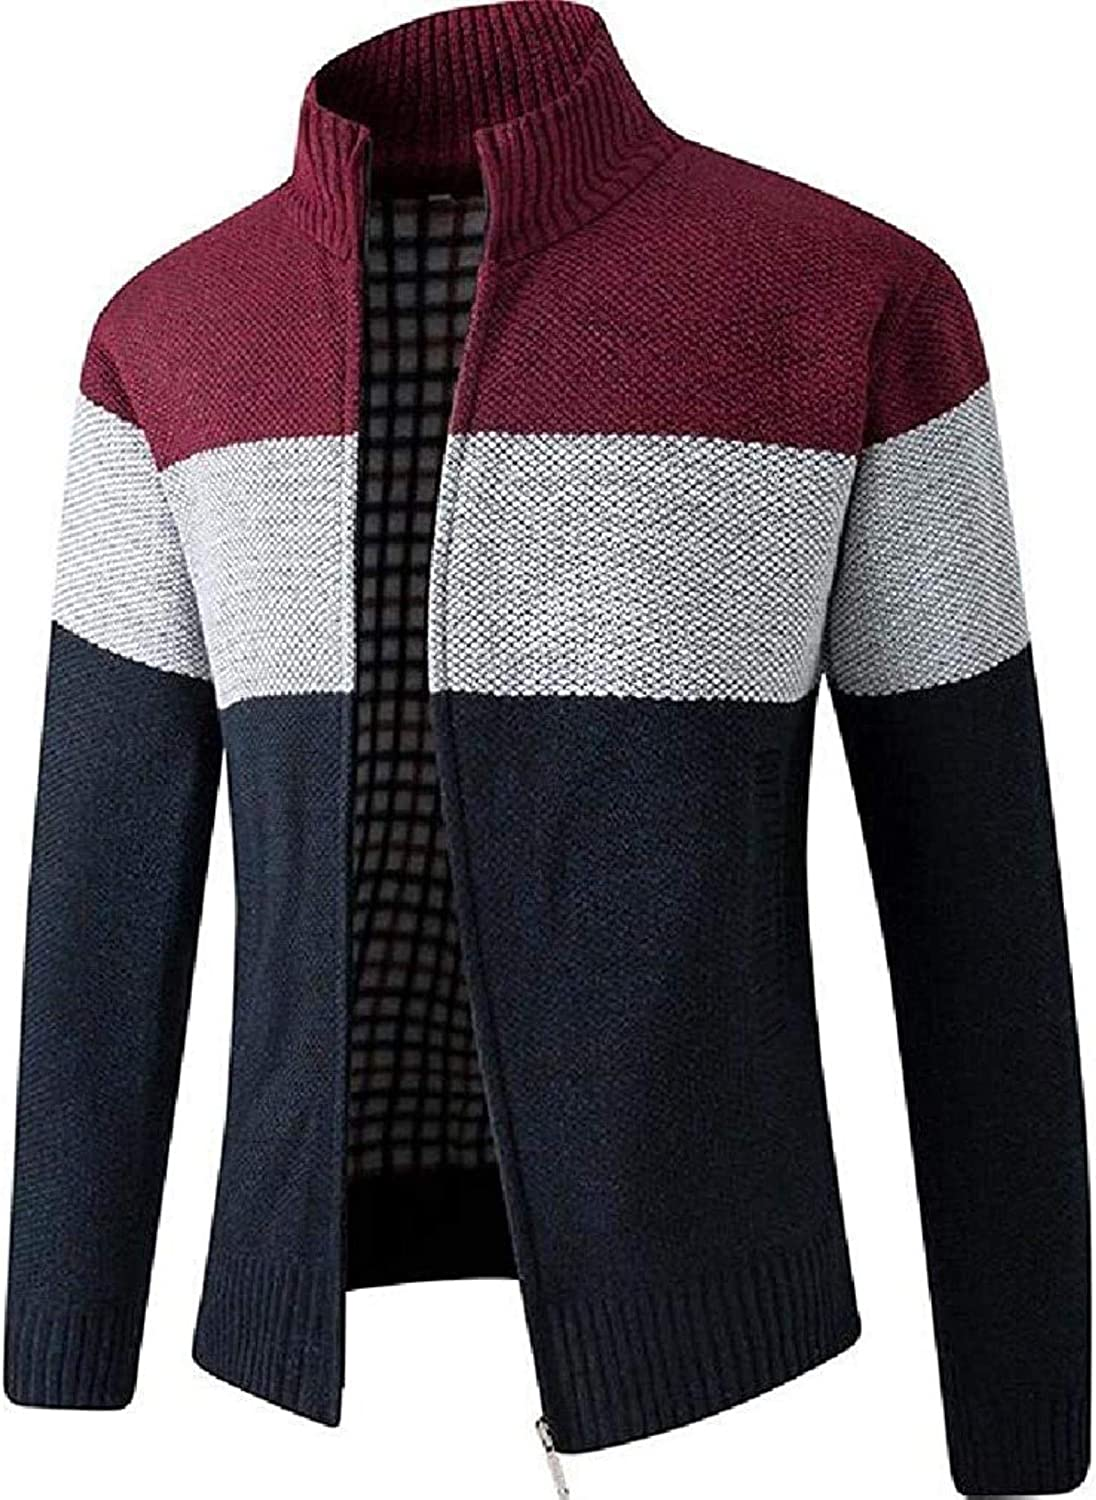 Men's Casual Slim Fit Contrast Color Stand Collar Zip Up Knit Cardigan Sweater